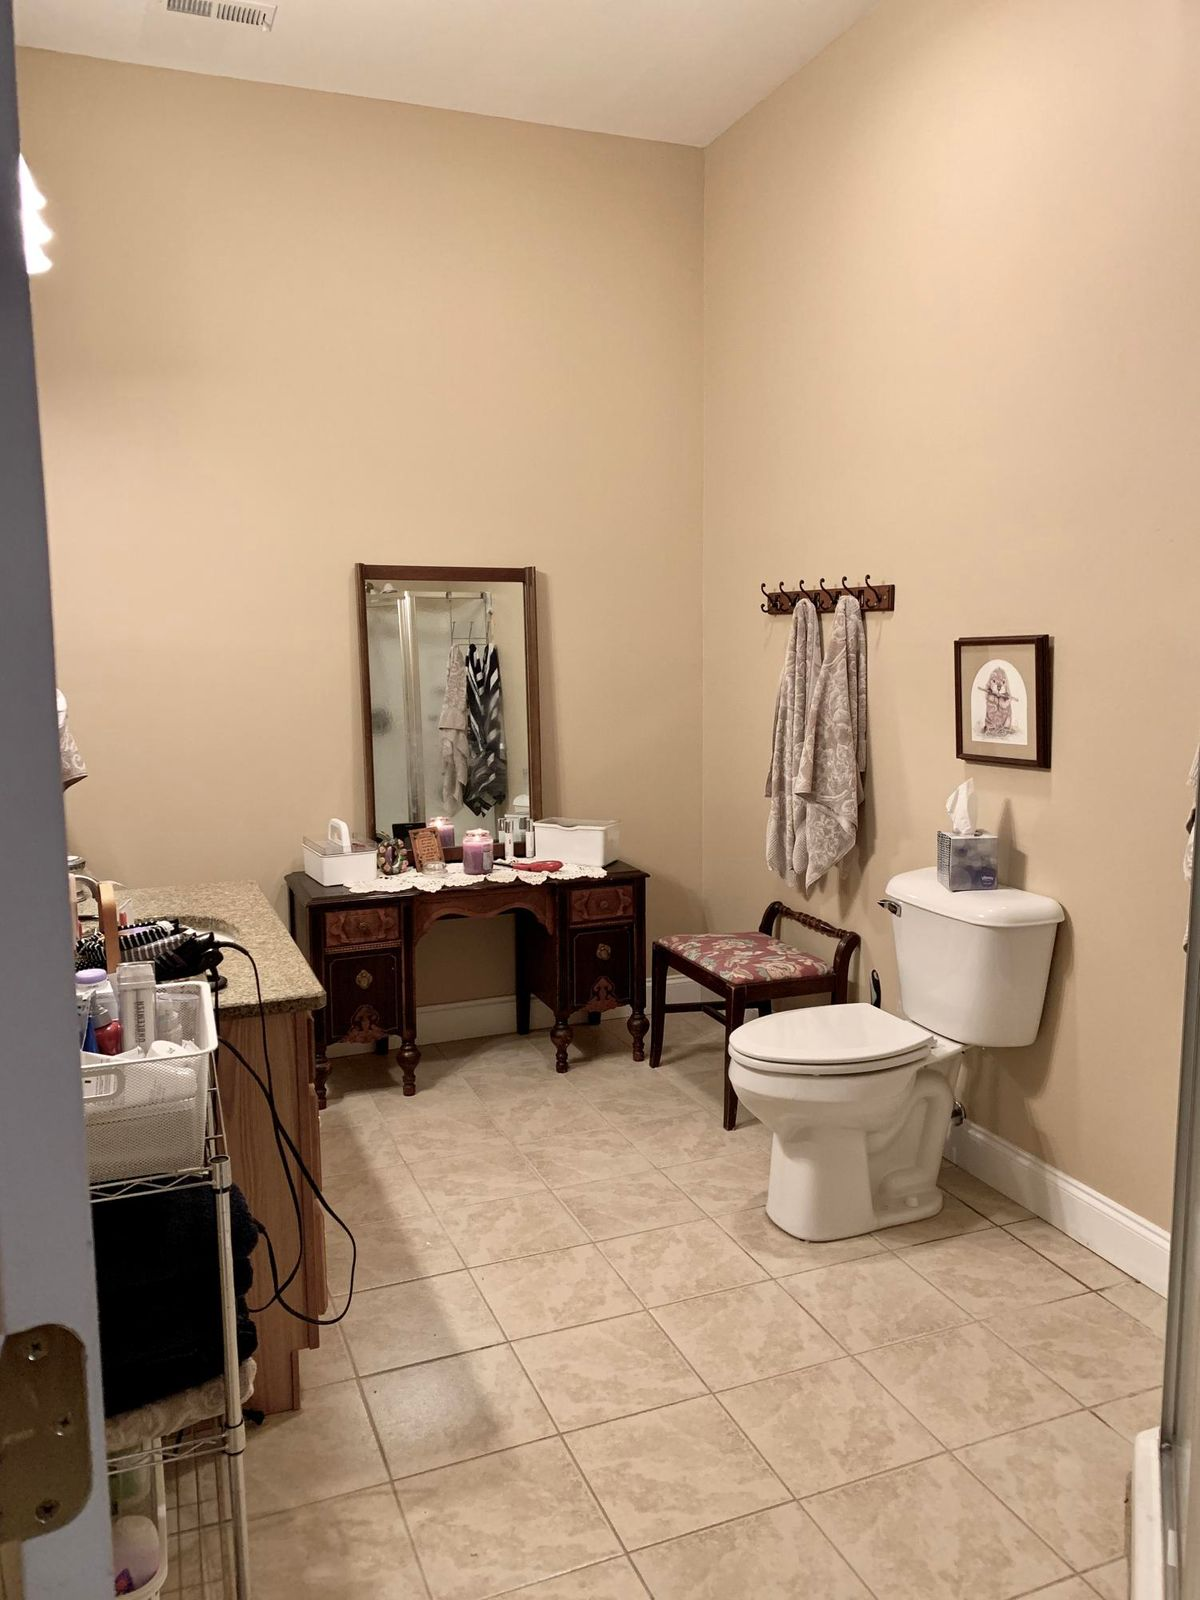 Bathroom 5 in Basement